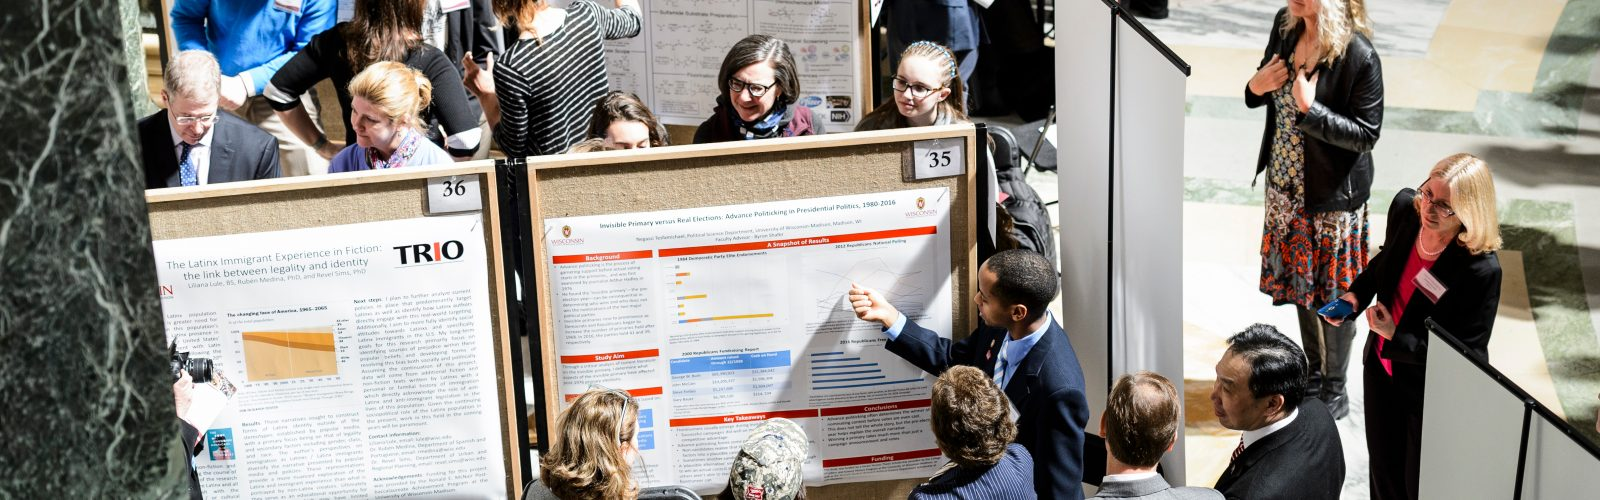 A picture of UW-Madison students presenting their research project displays.